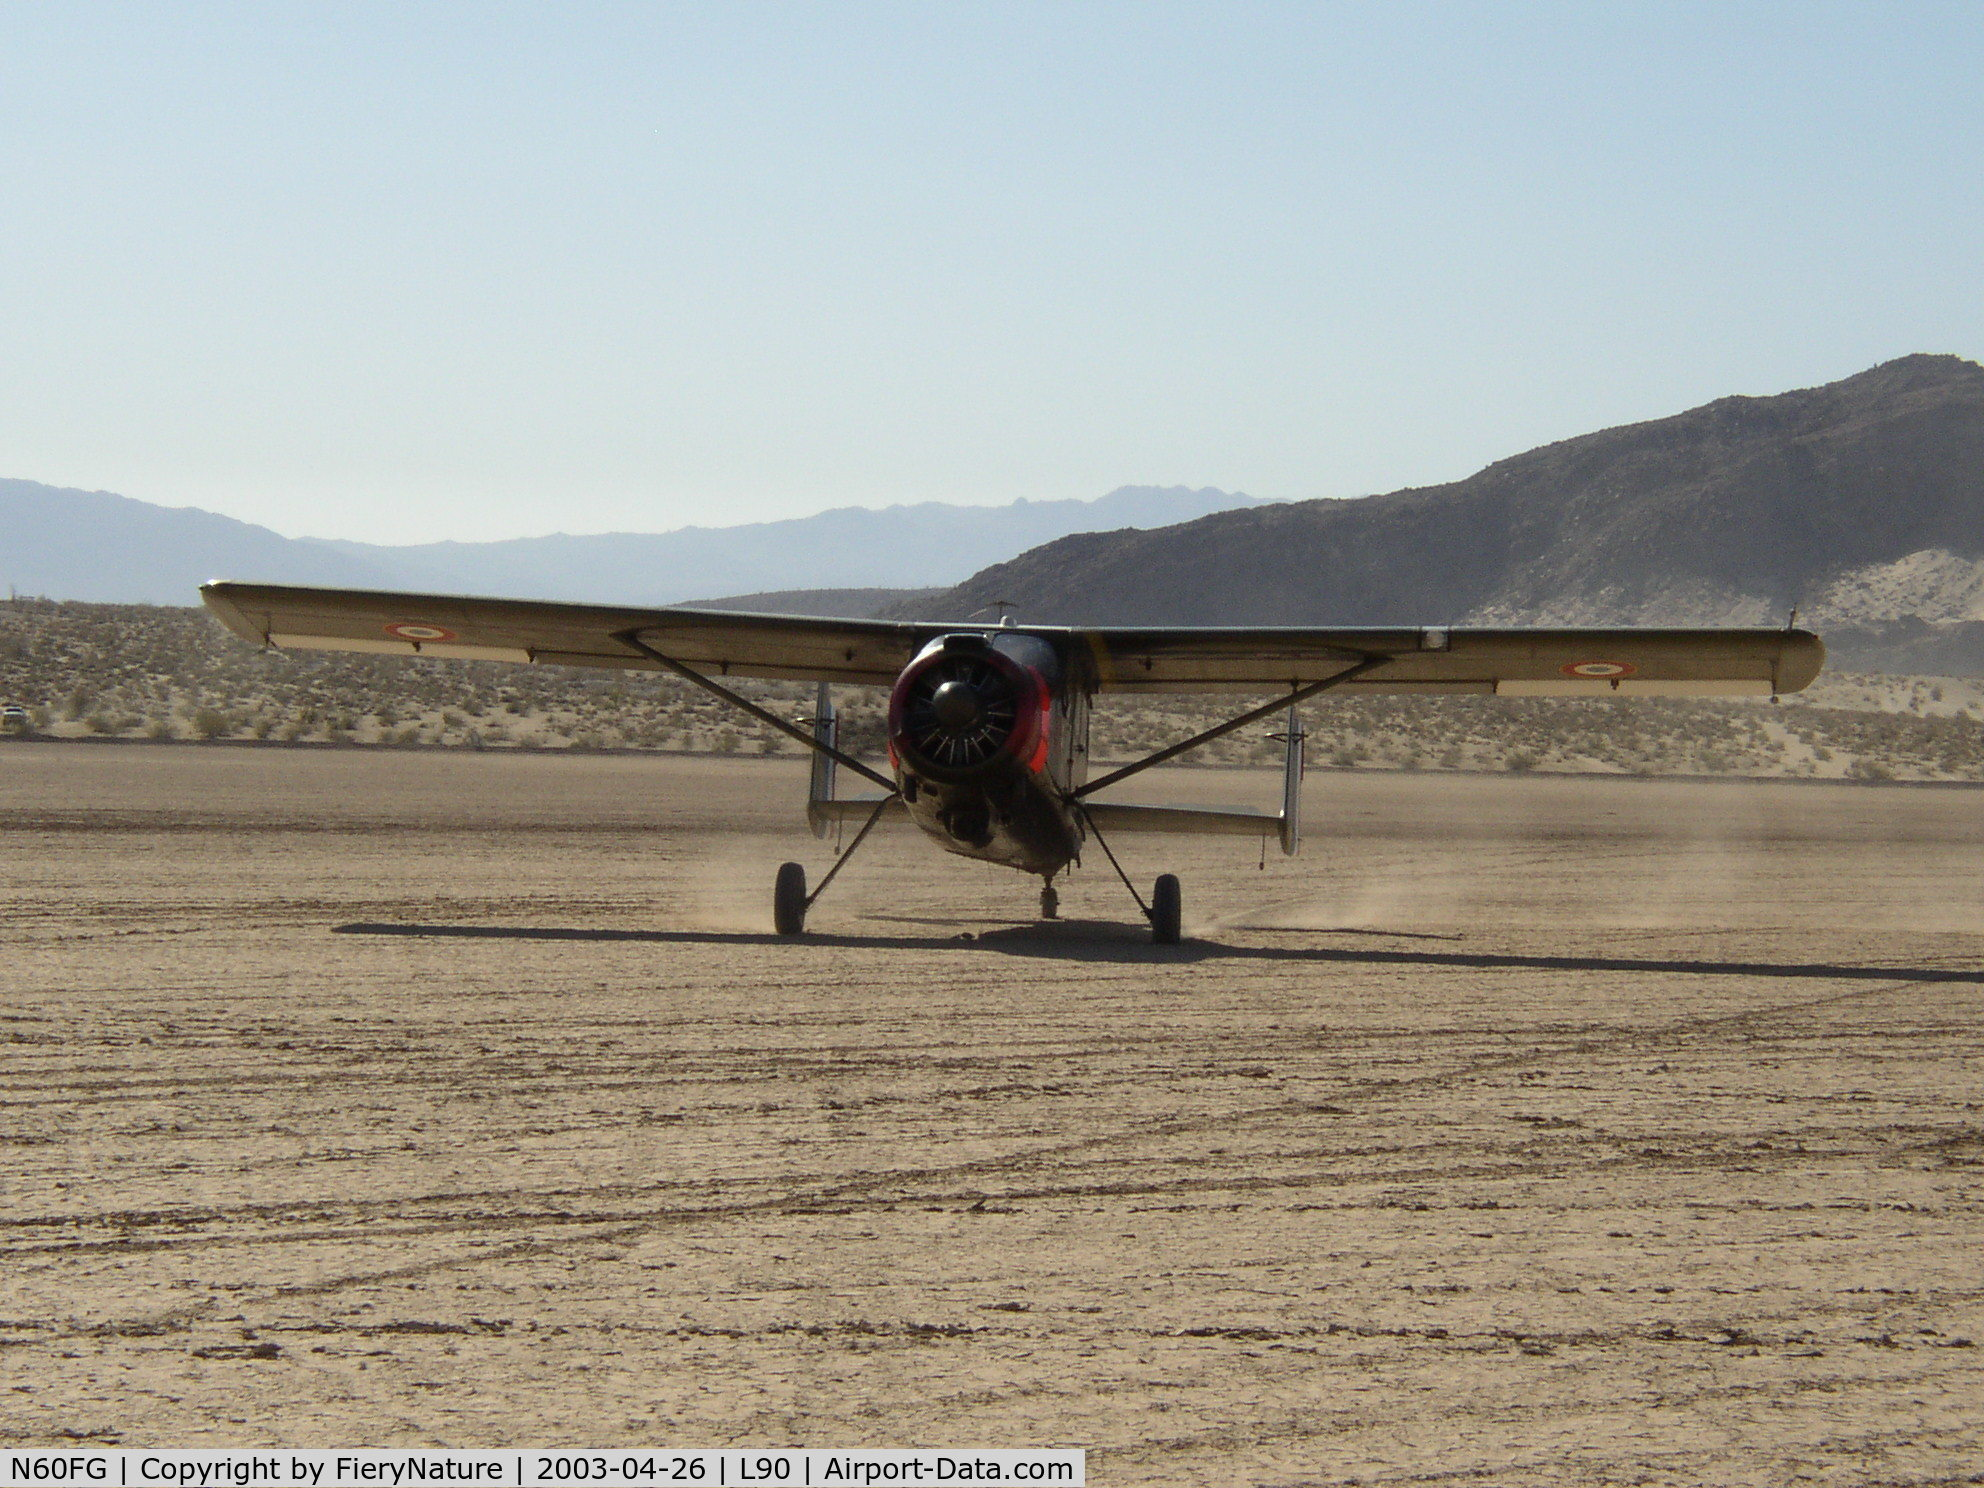 N60FG, Max Holste MH-1521M Broussard C/N 214, Broussard 214 taxi for take off at Ocotillo Wells